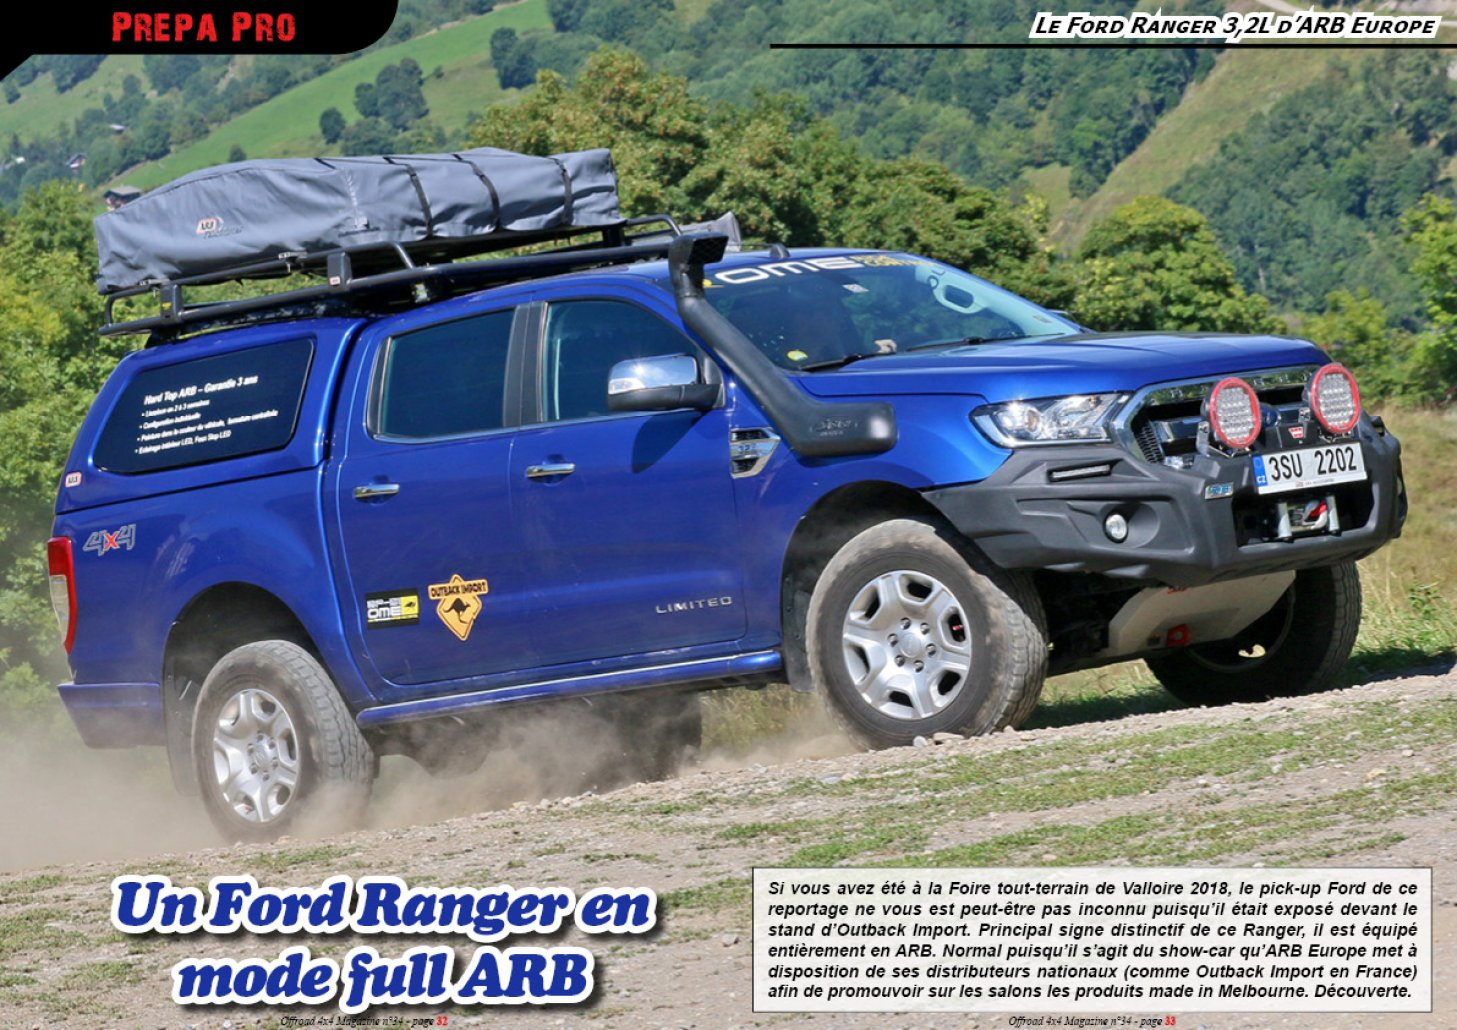 Le Ford Ranger 3,2L d' ARB Europe